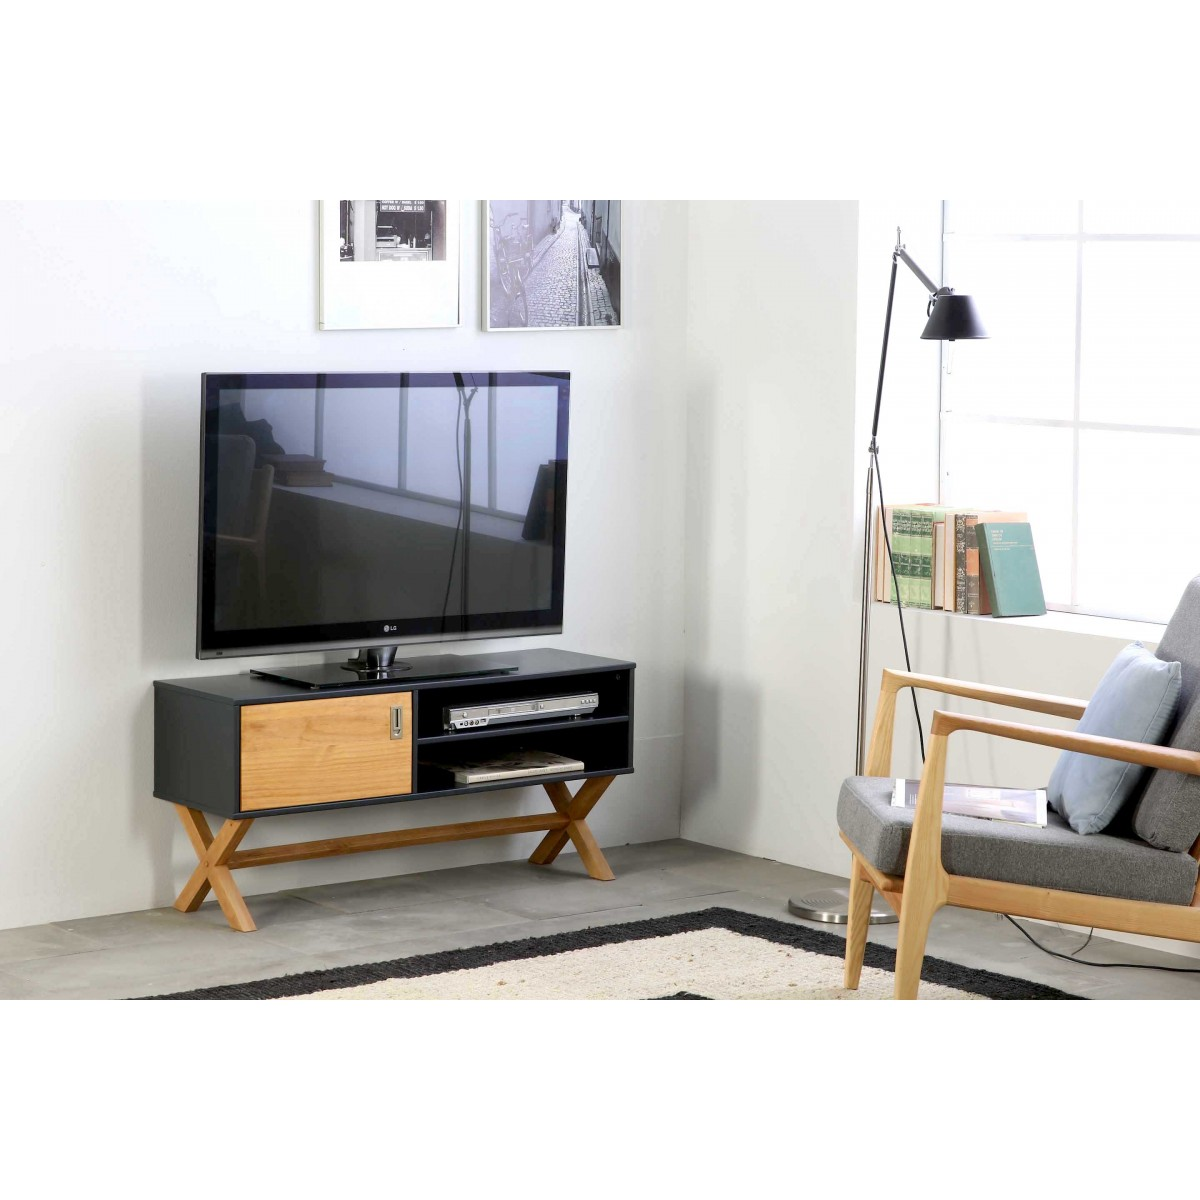 Meuble Tv Lidie Anthracite Lemobilier Ma # Meuble Tv Anthracite